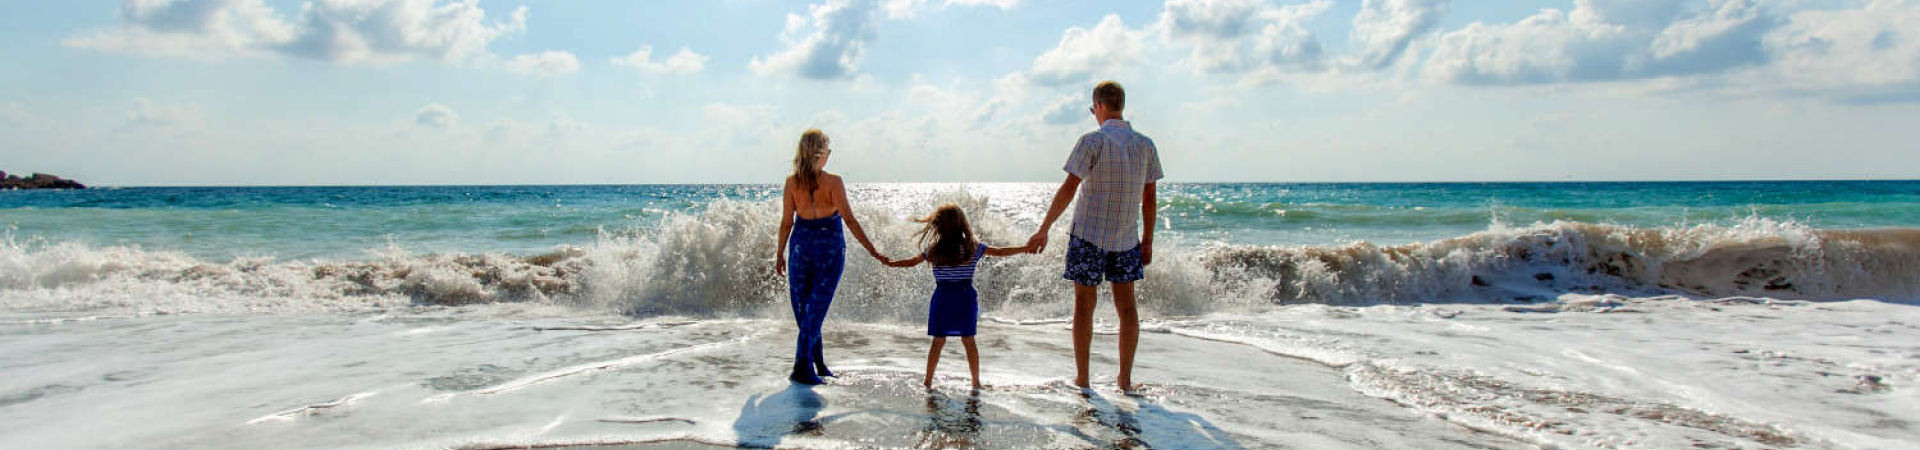 A child holds their parents hands while standing at the edge of the water at the beach